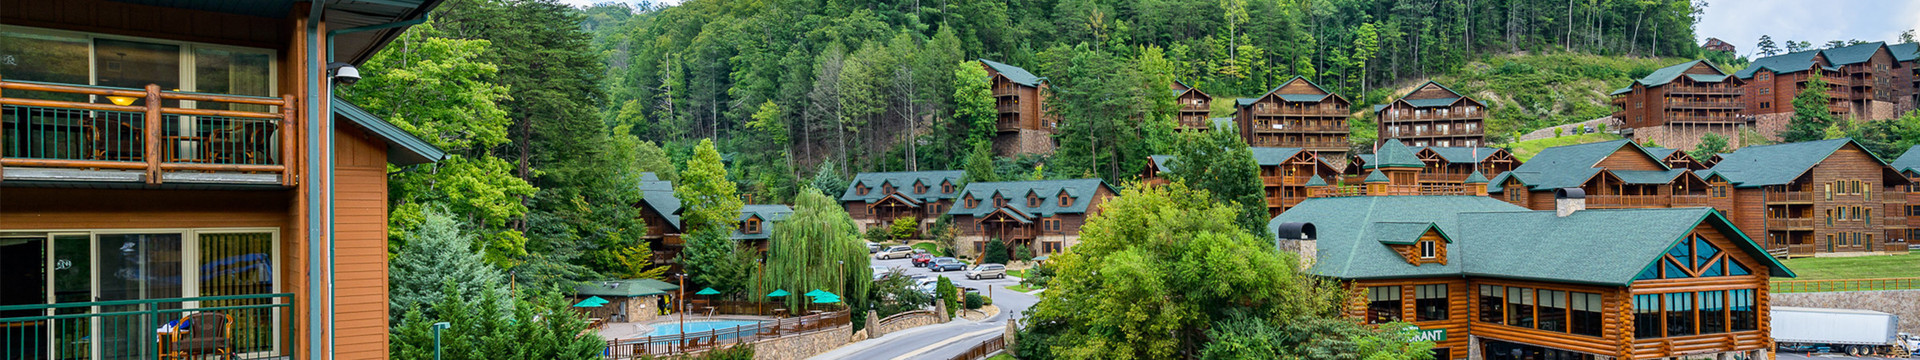 Frequently Asked Questions - FAQs - Westgate Smoky Mountain Resort & Spa